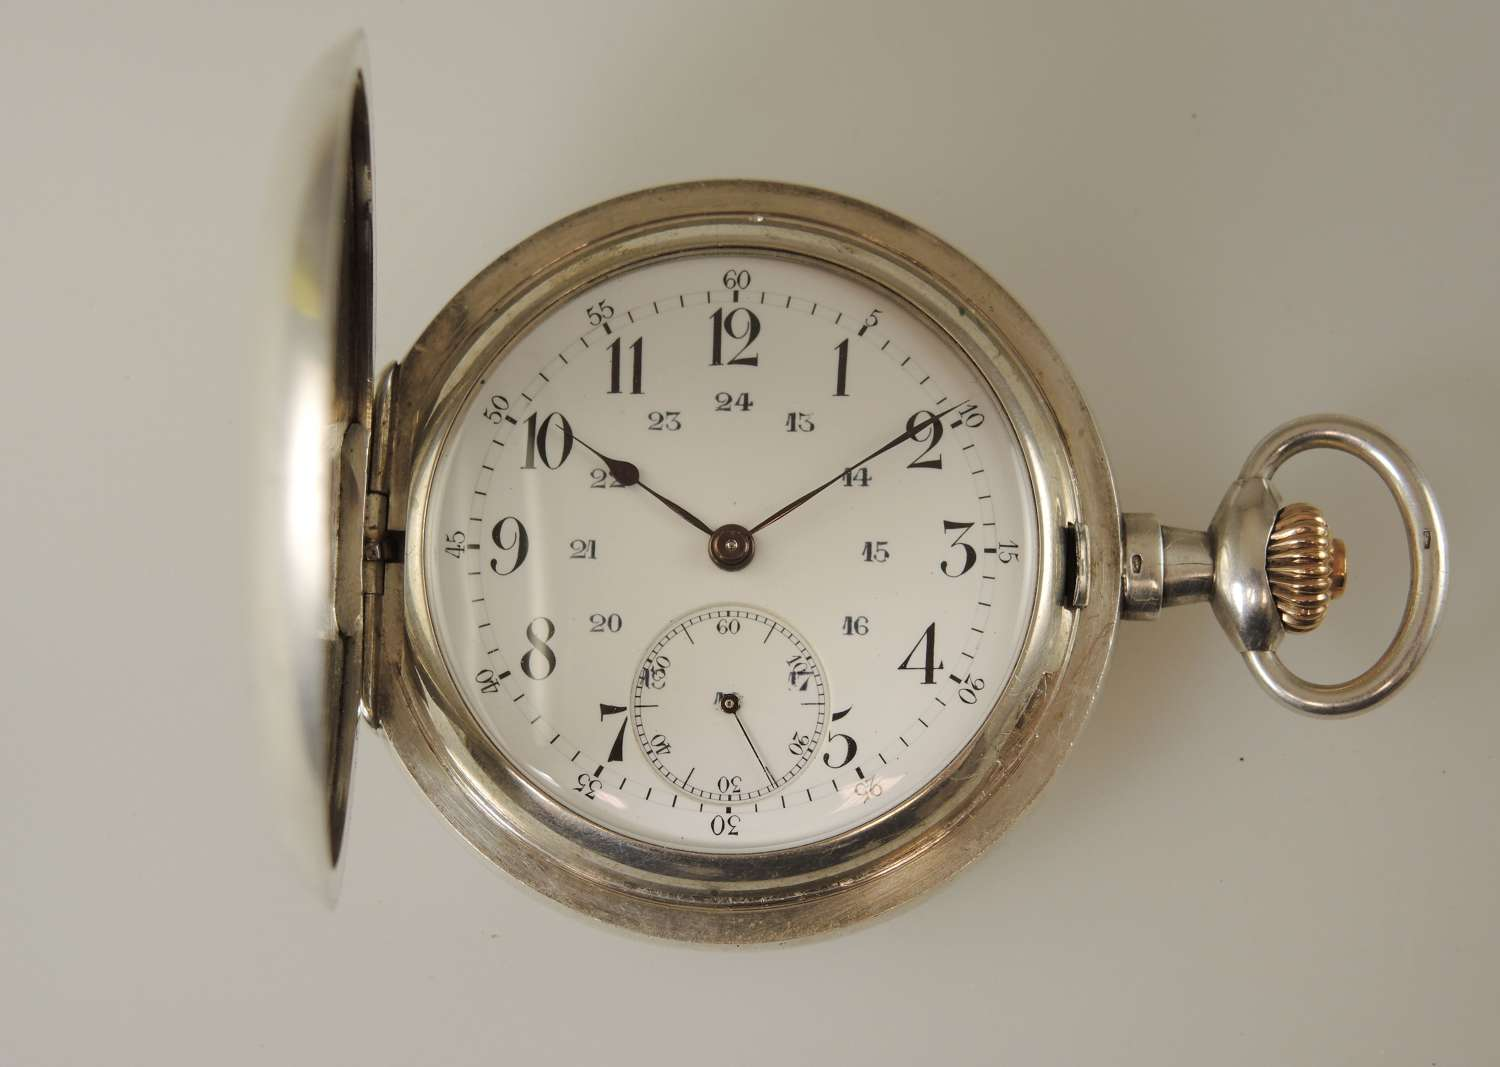 High quality 20 jewel silver hunter pocket watch c1910